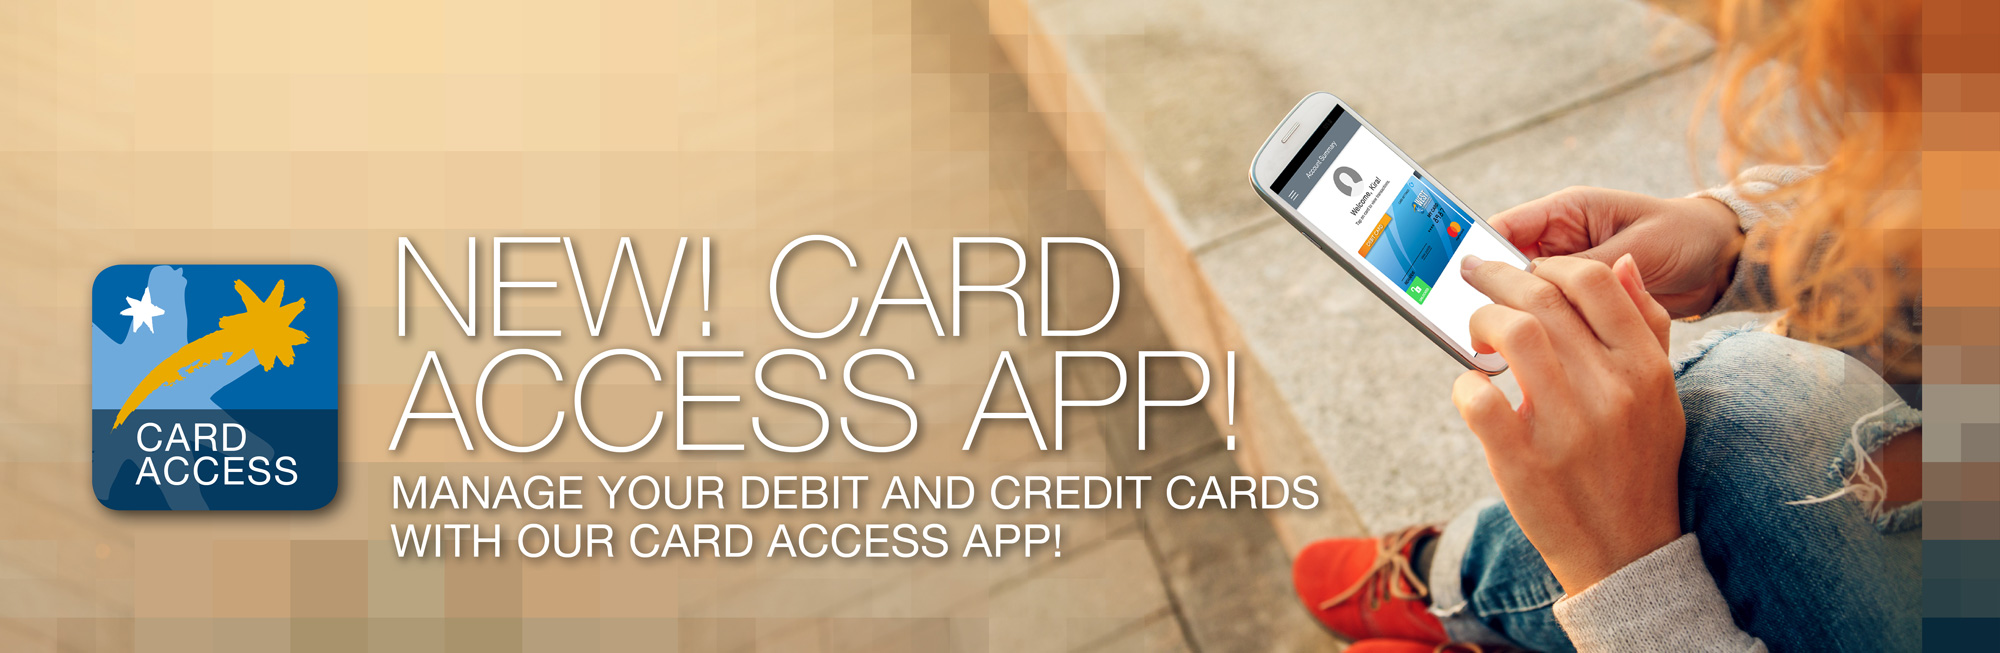 New Card Access app available. Manage your debit and credit cards with our Card Access App